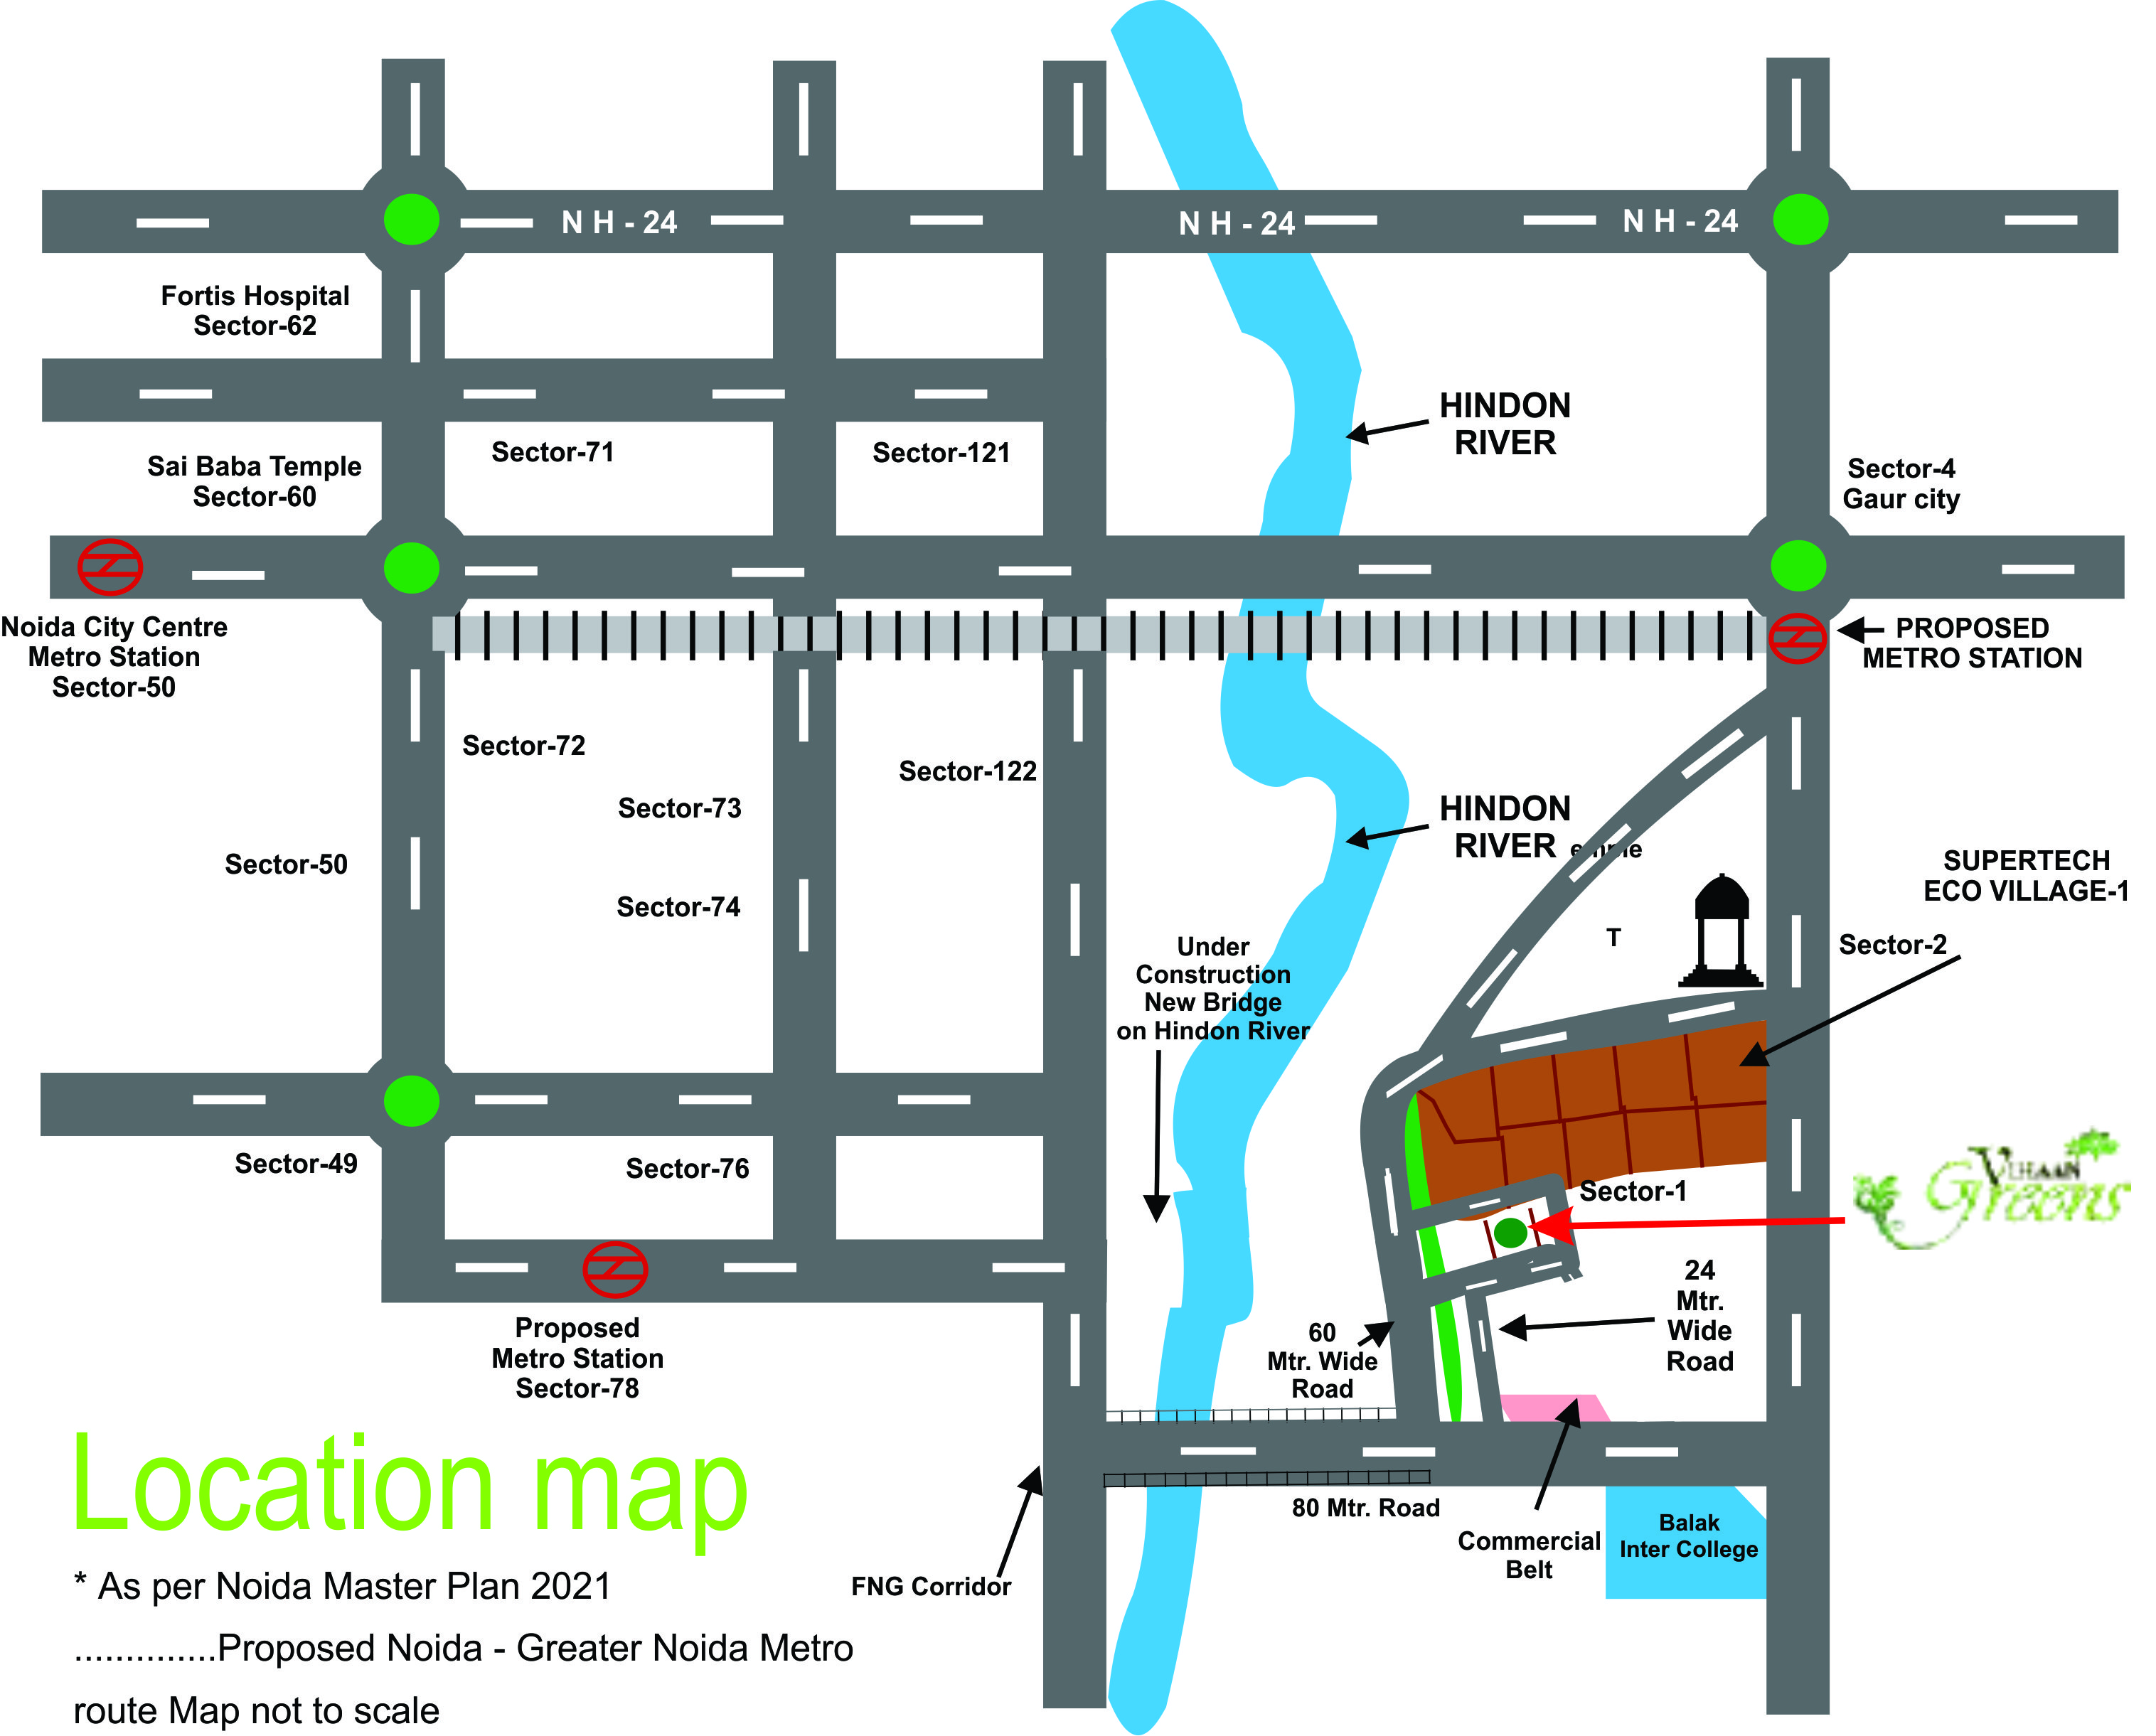 vihaan greens location map